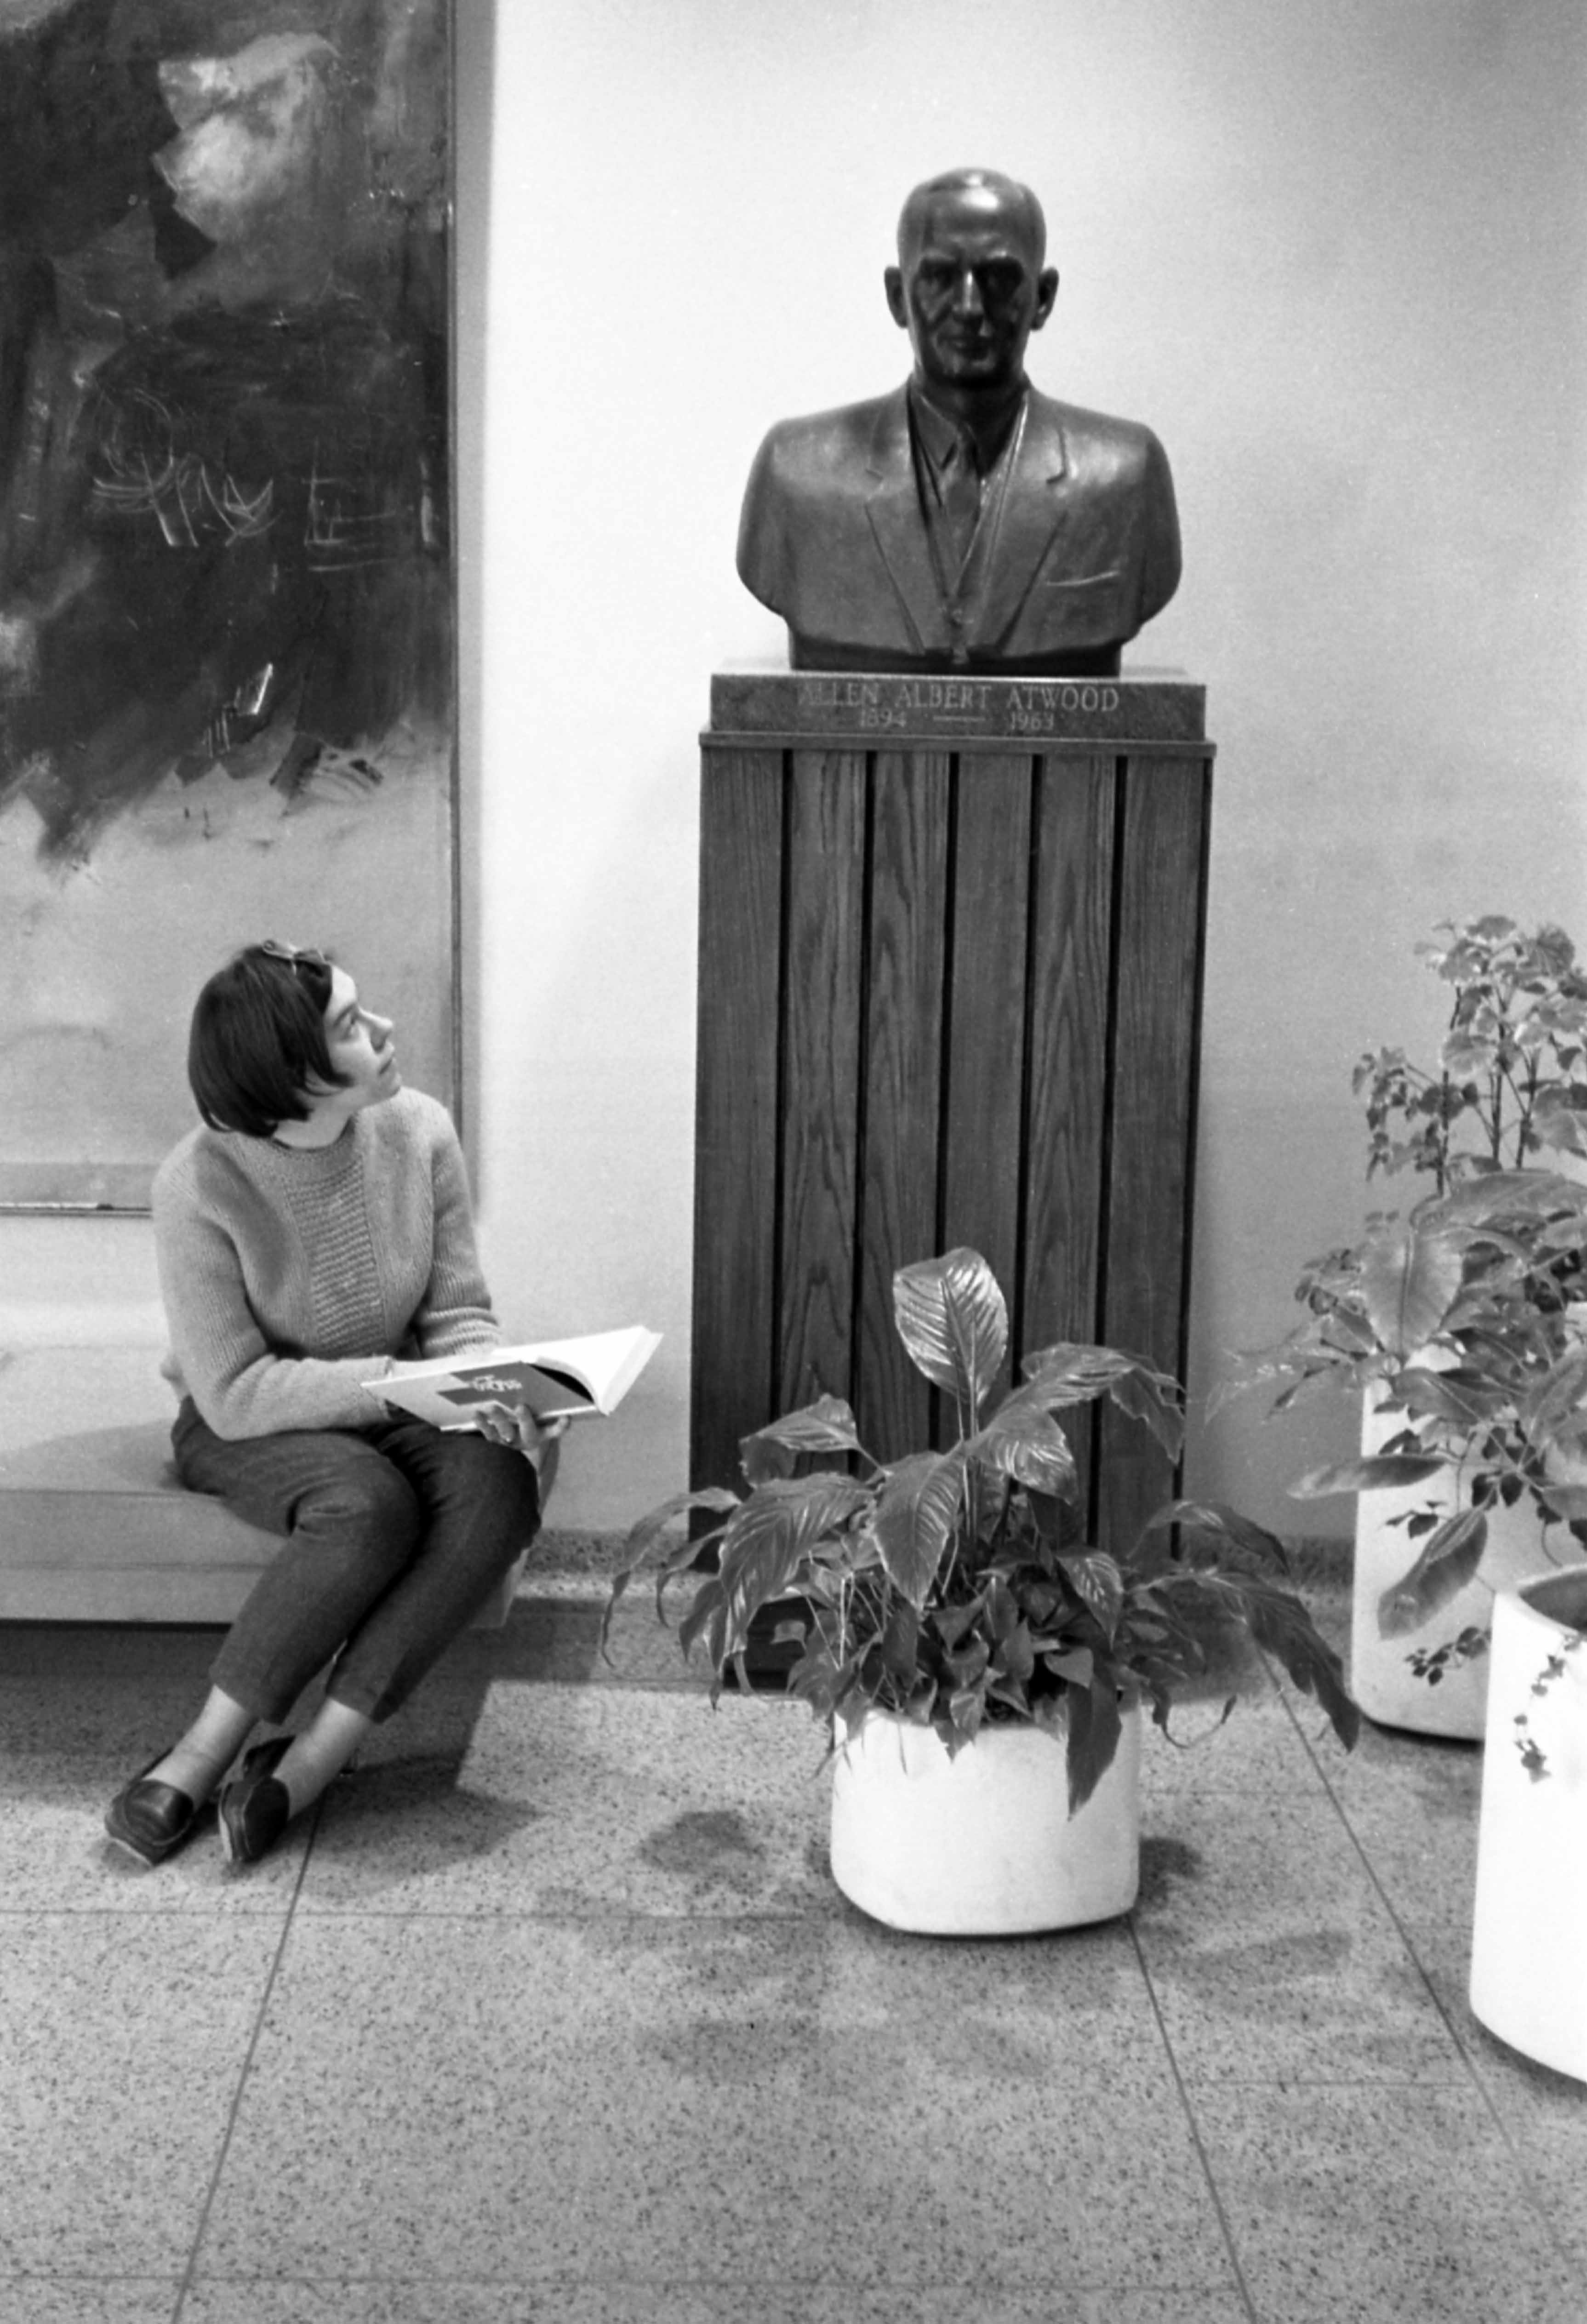 Allen Atwood bust, 1966?